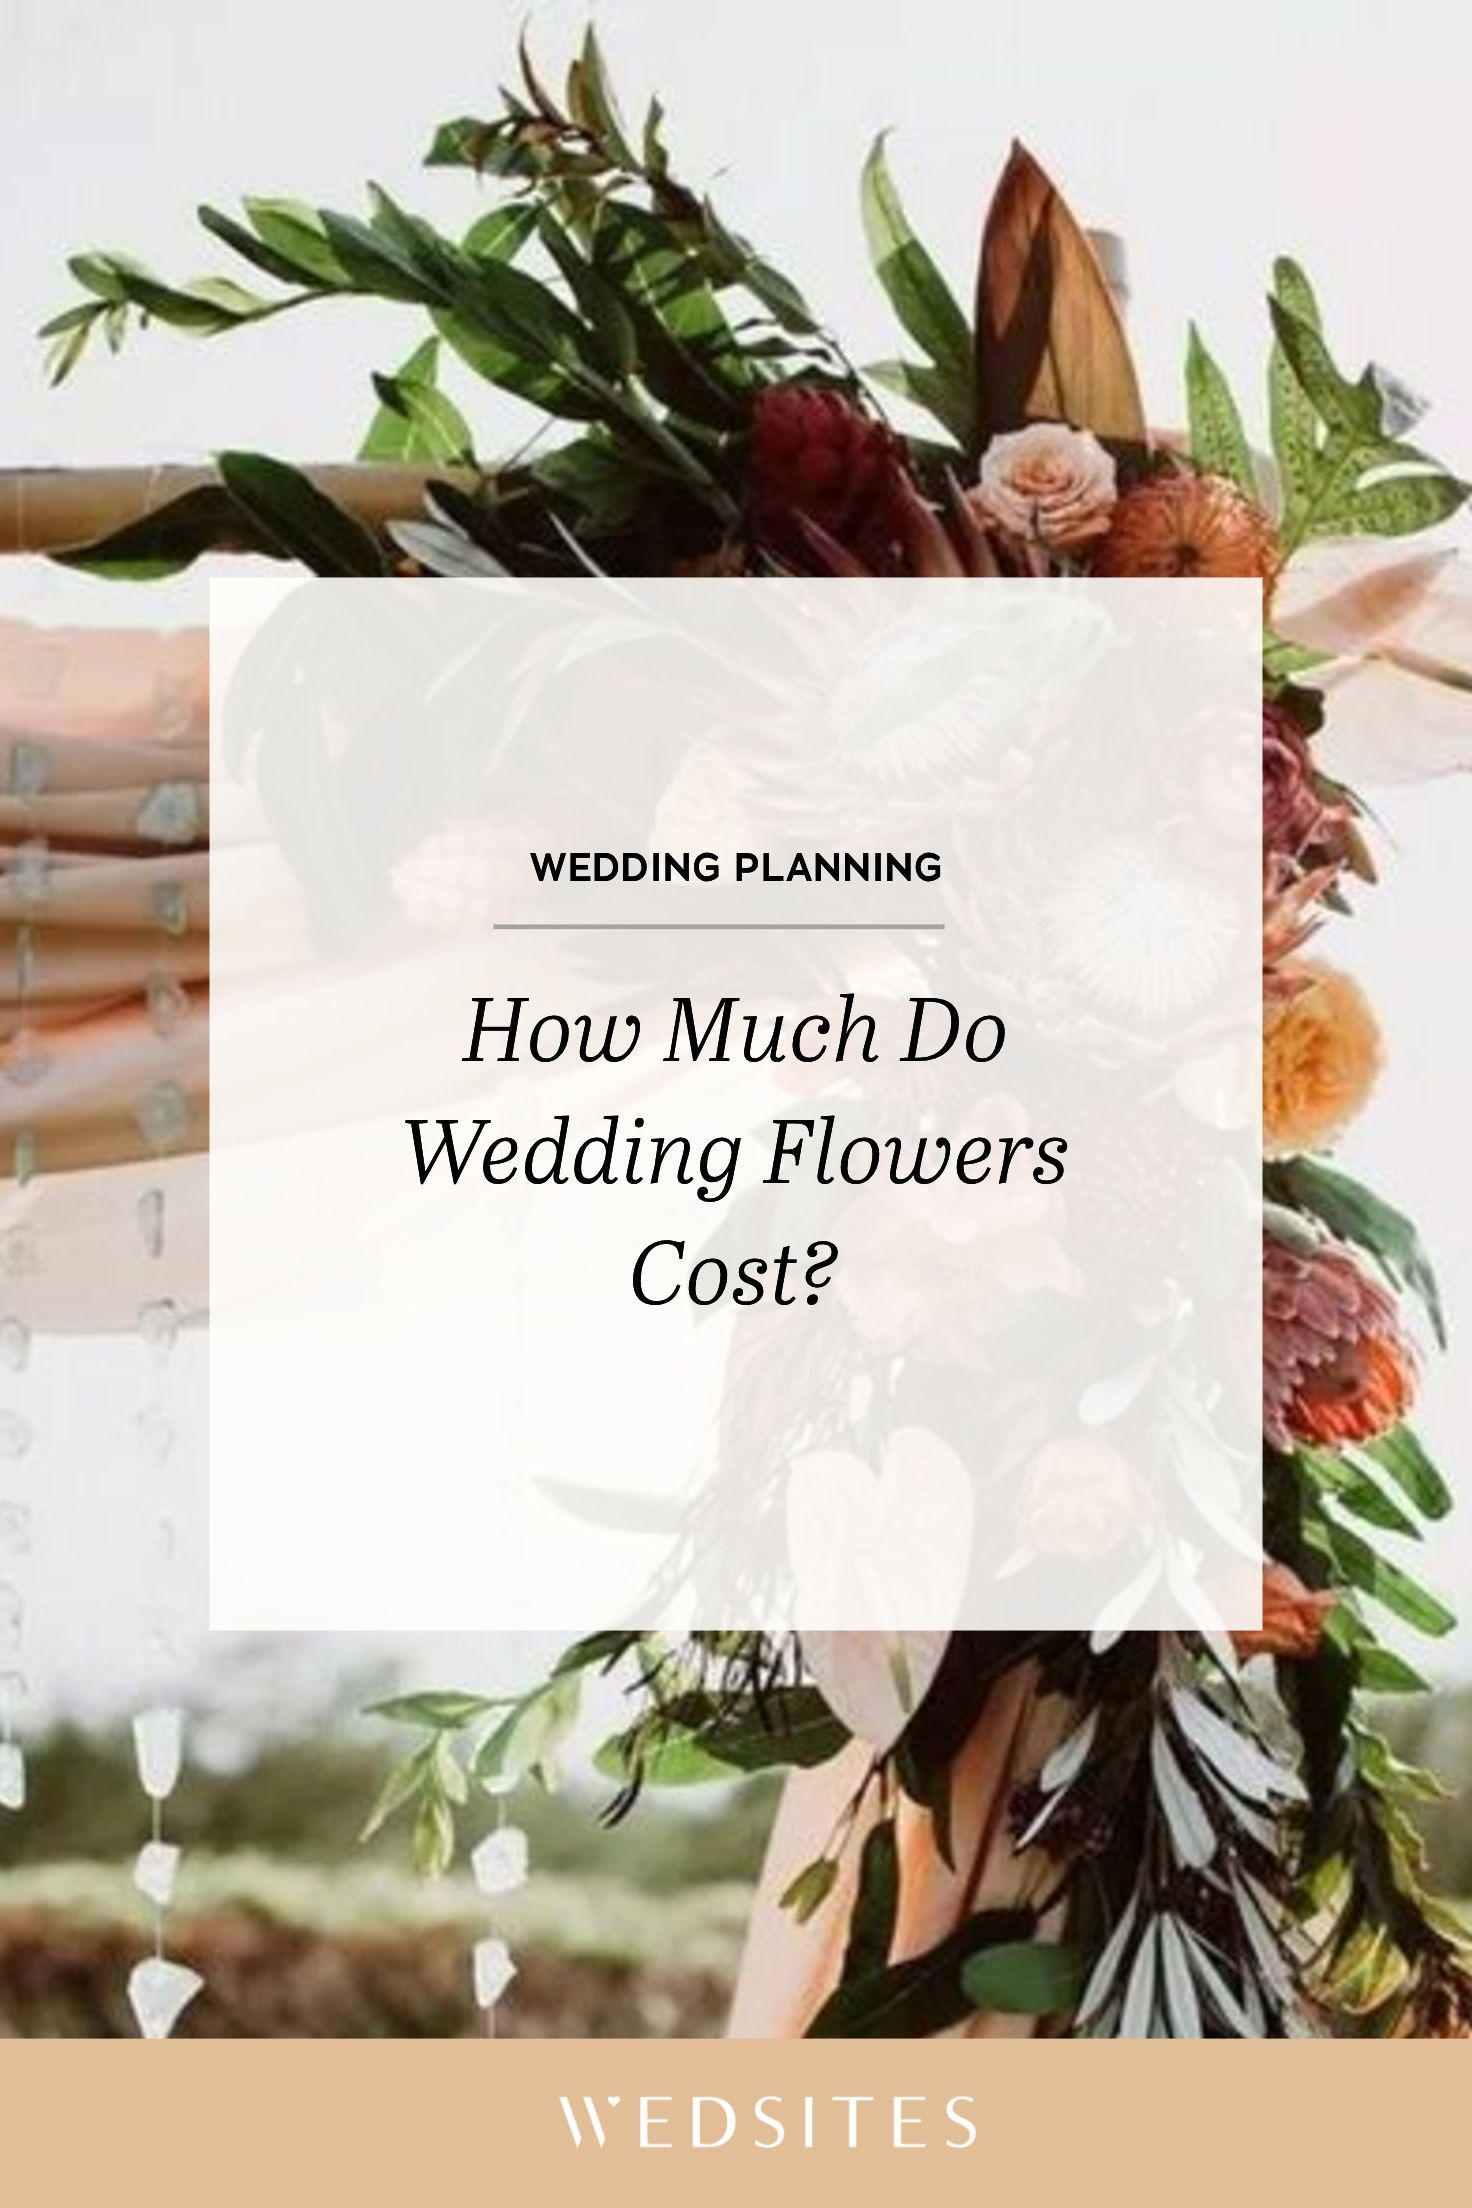 How Much Do Wedding Flowers Cost? Wedding flowers cost